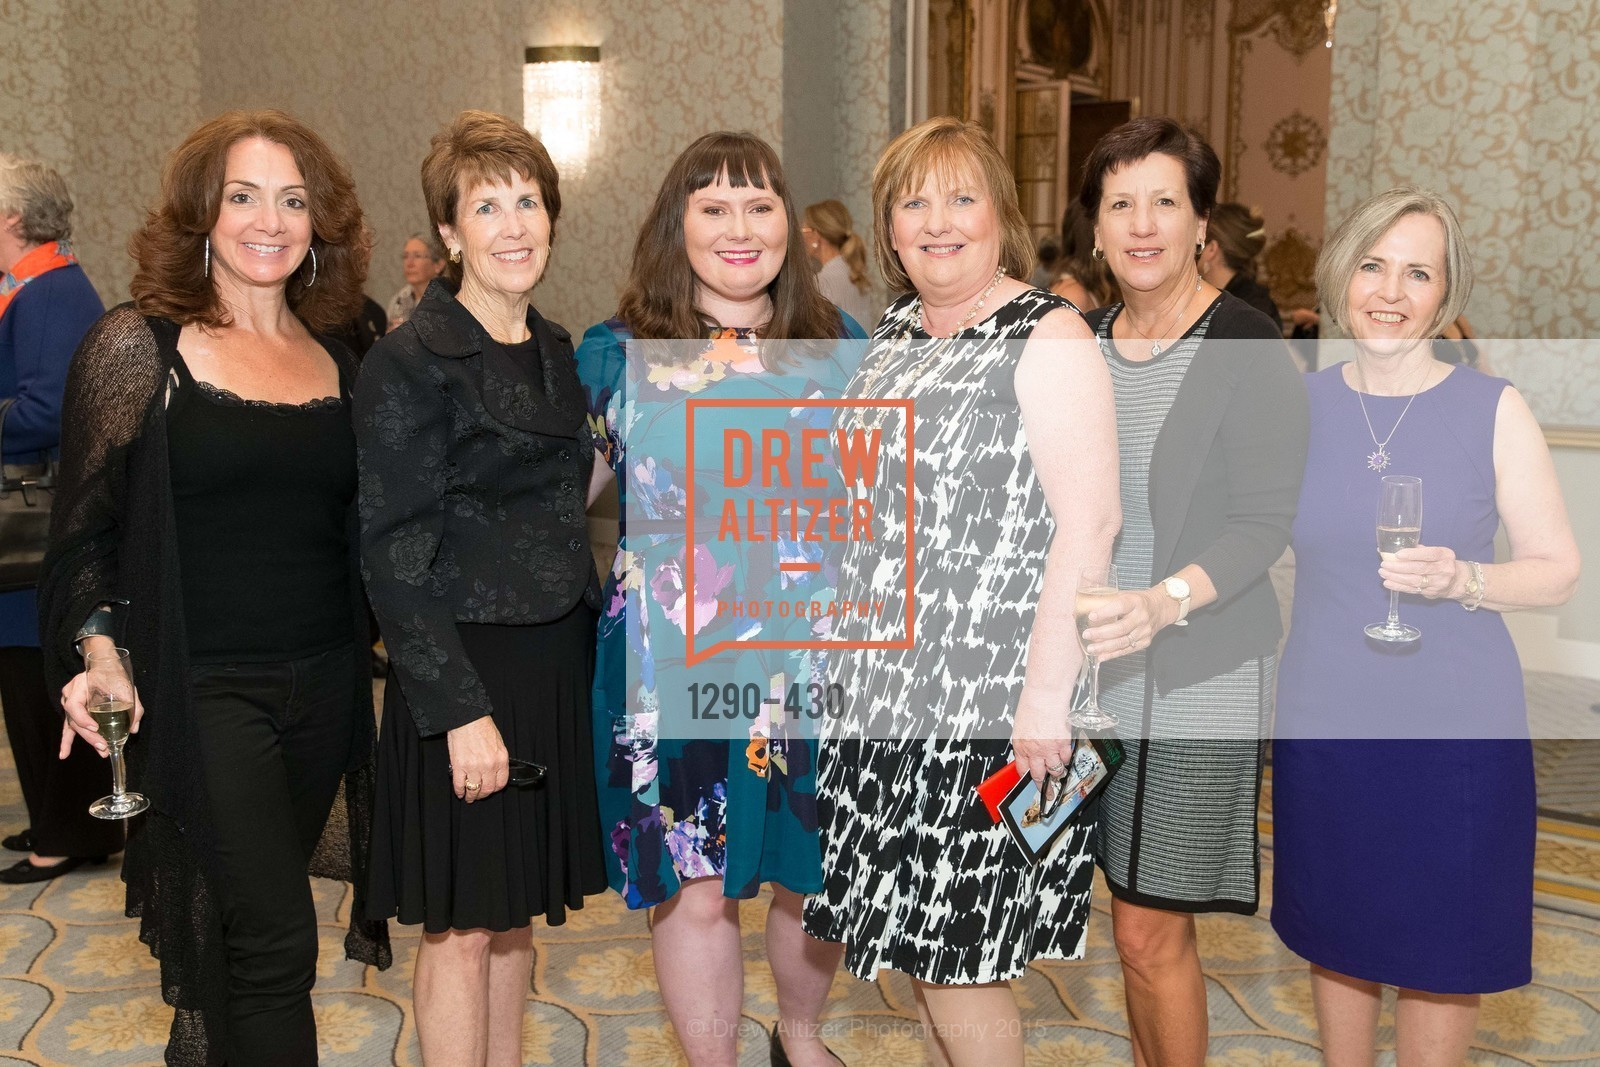 Sandra Badillo, Mary Ward, Erin Badillo, Mary Badillo, Susan Flageollet, Chris Ward, The Arthritis Foundation Presents FASHION FIGHTS ARTHRITIS featuring St. John, Fairmont Hotel, Ballroom. 950 Mason Street, October 30th, 2015,Drew Altizer, Drew Altizer Photography, full-service event agency, private events, San Francisco photographer, photographer California